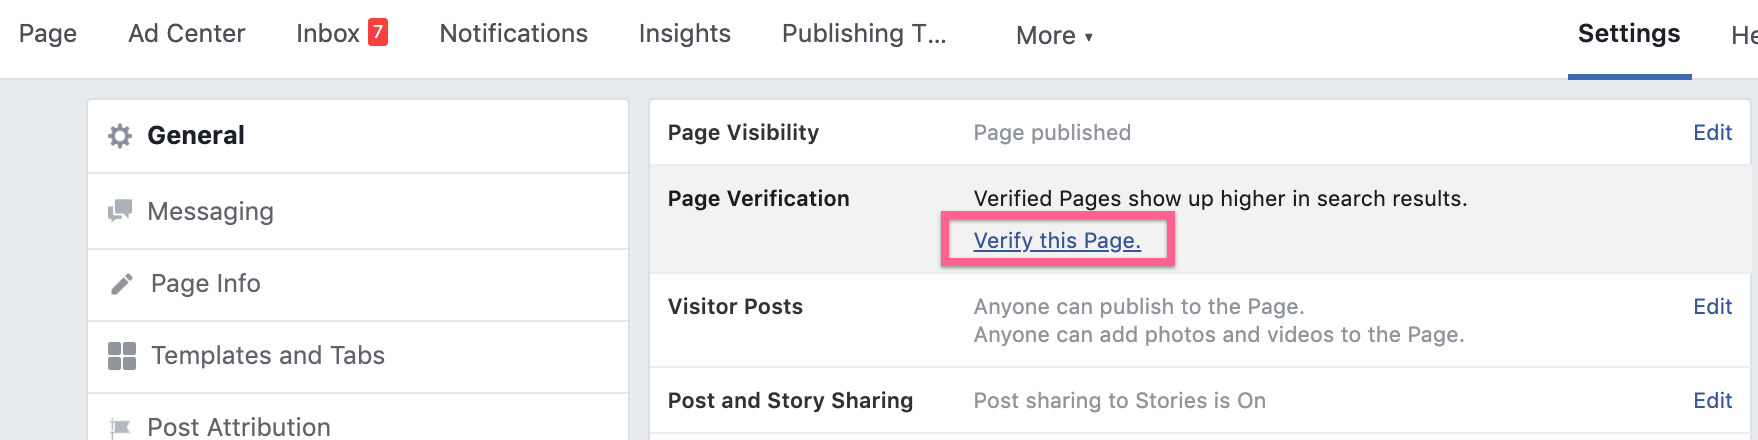 Step 4: Verify this Page